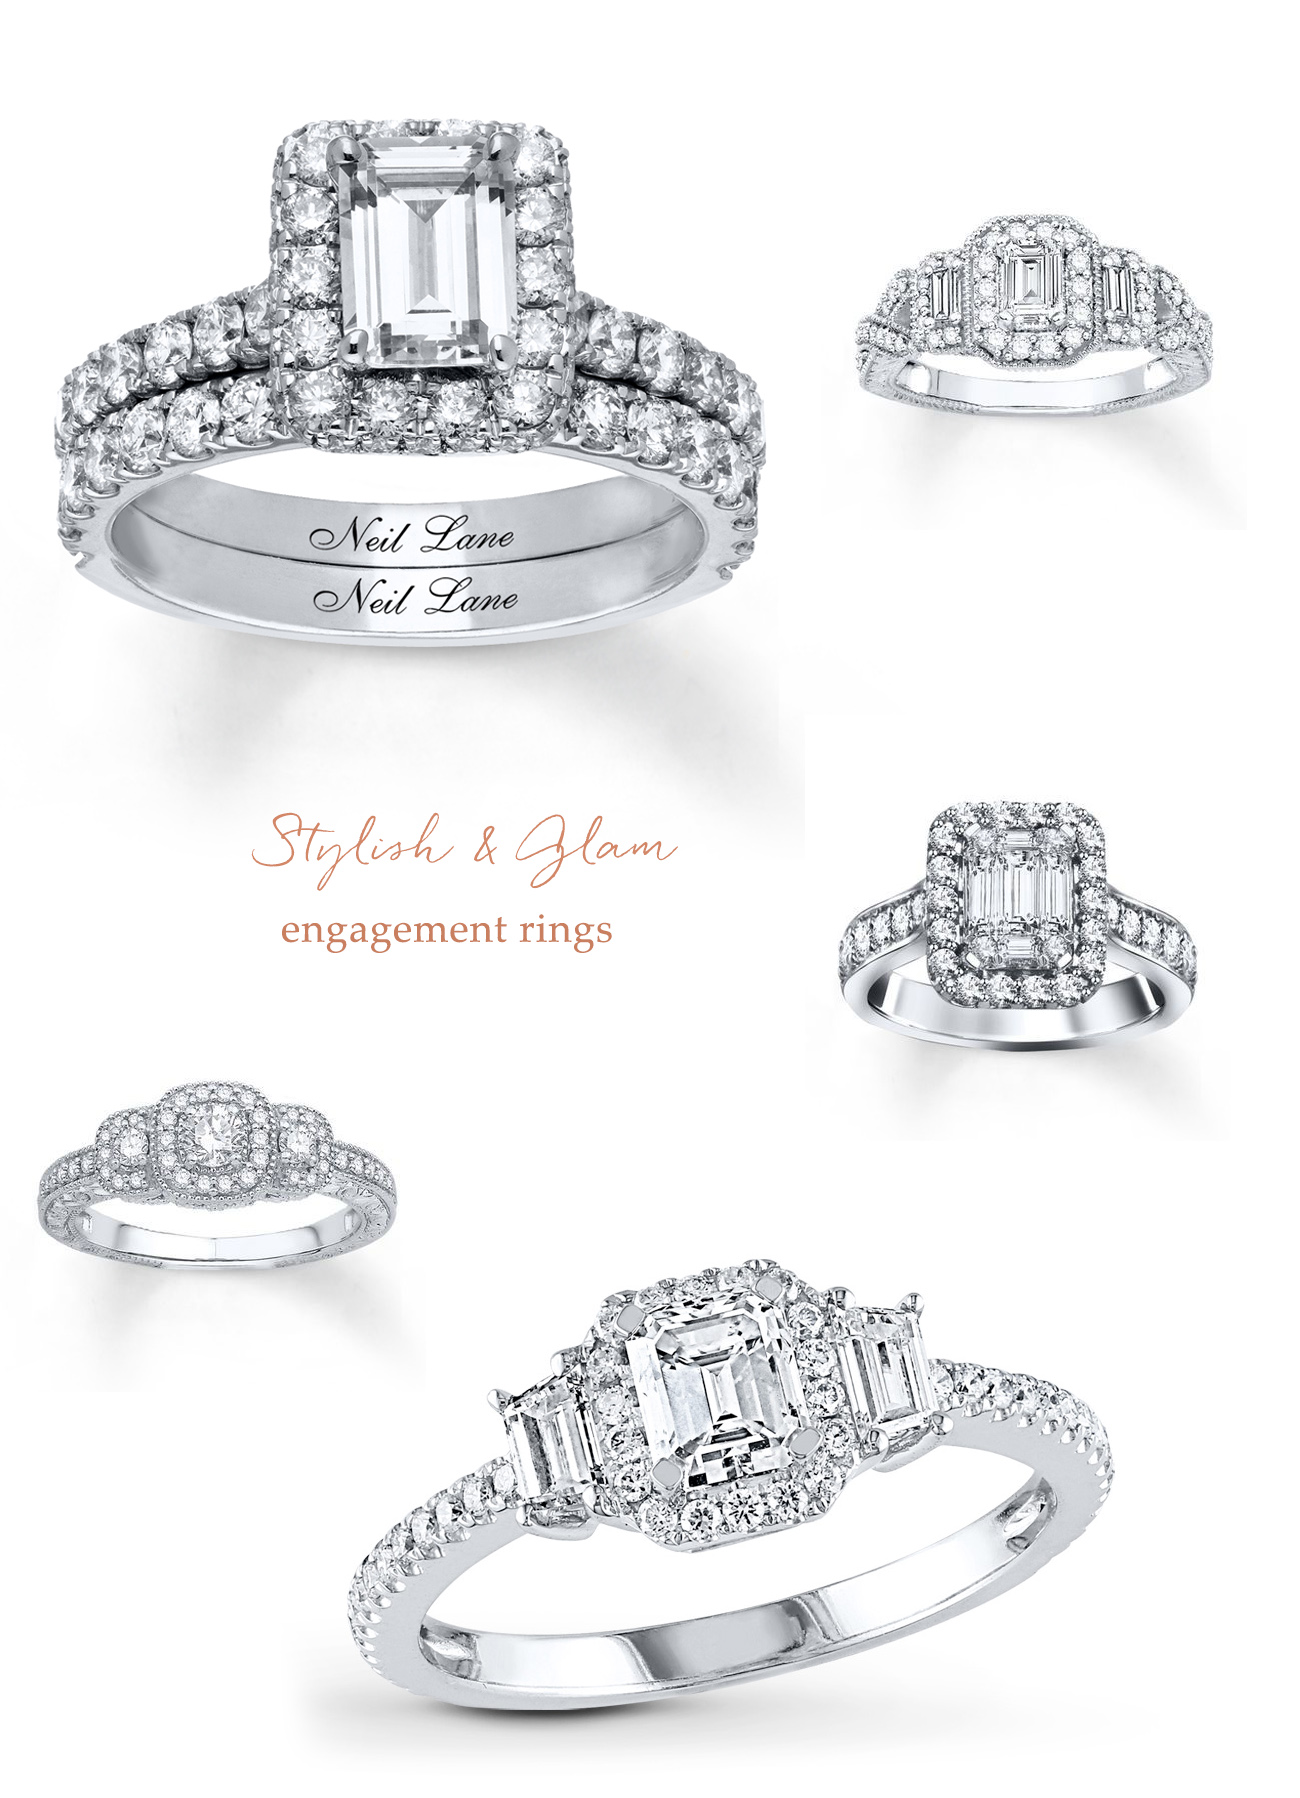 glam engagement rings from Jared